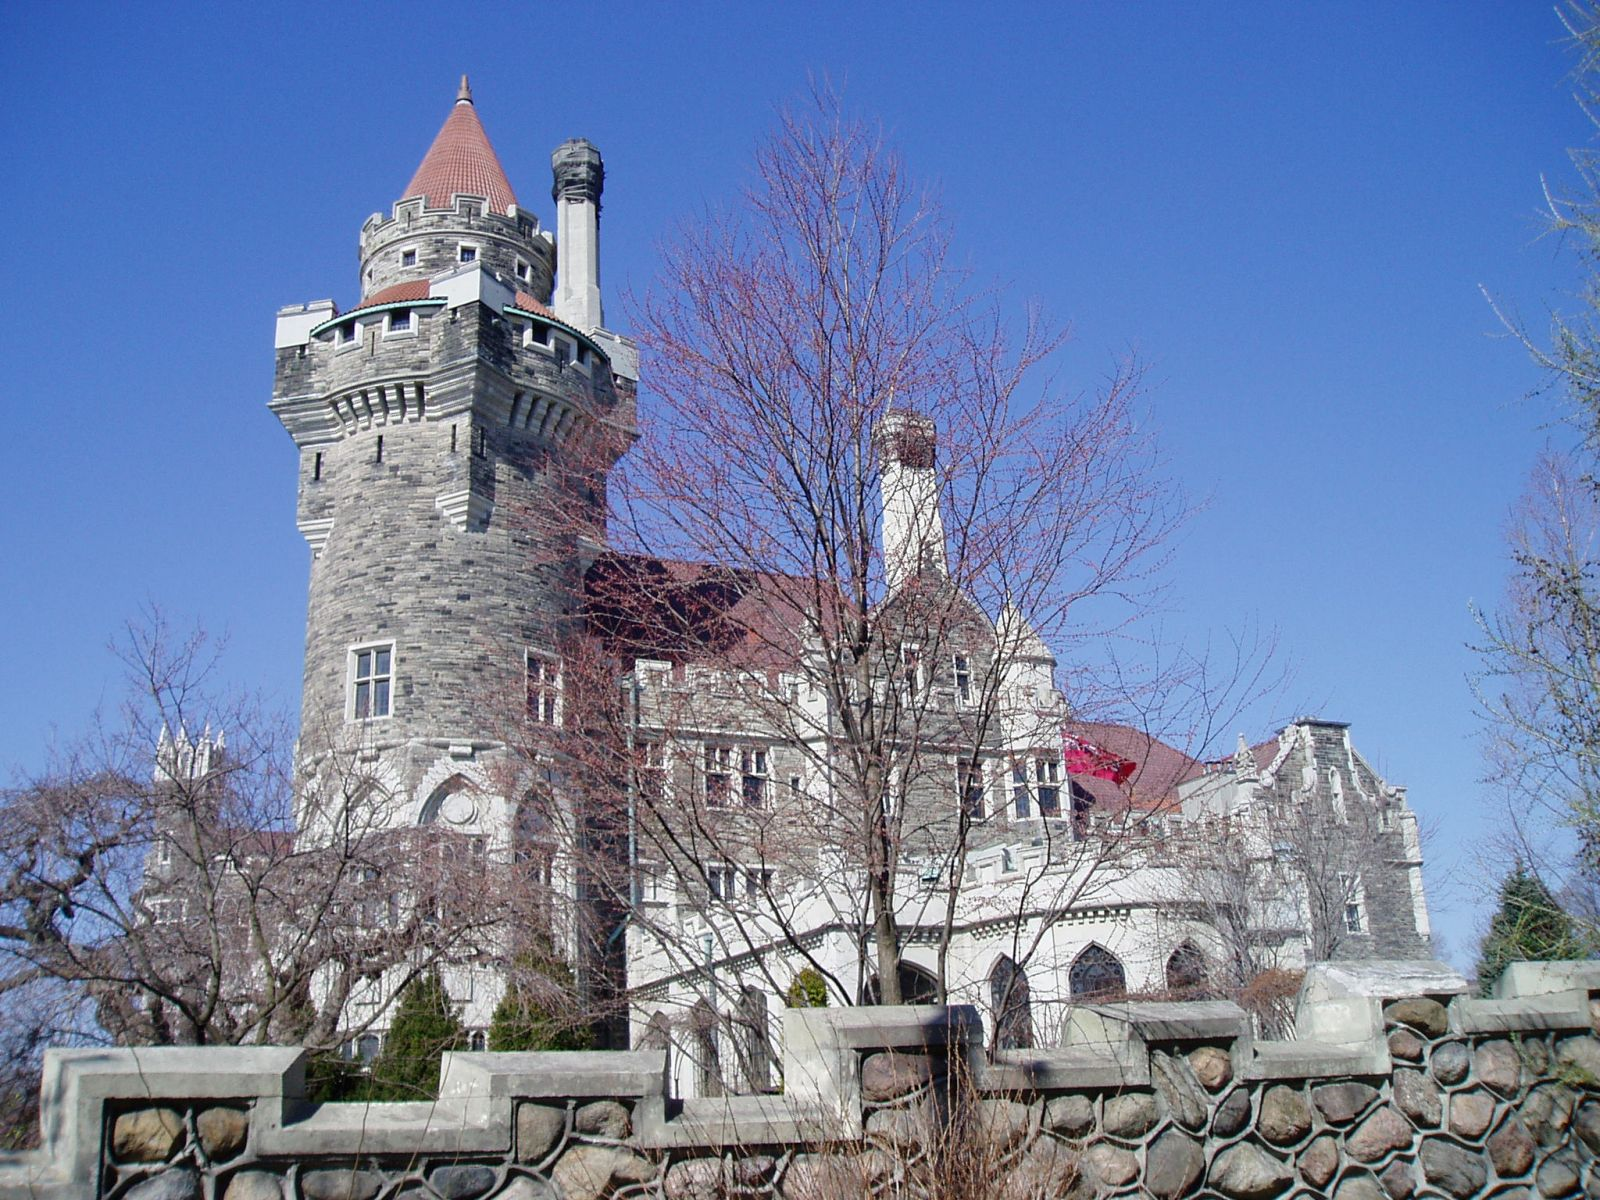 Exterior view of Casa Loma property